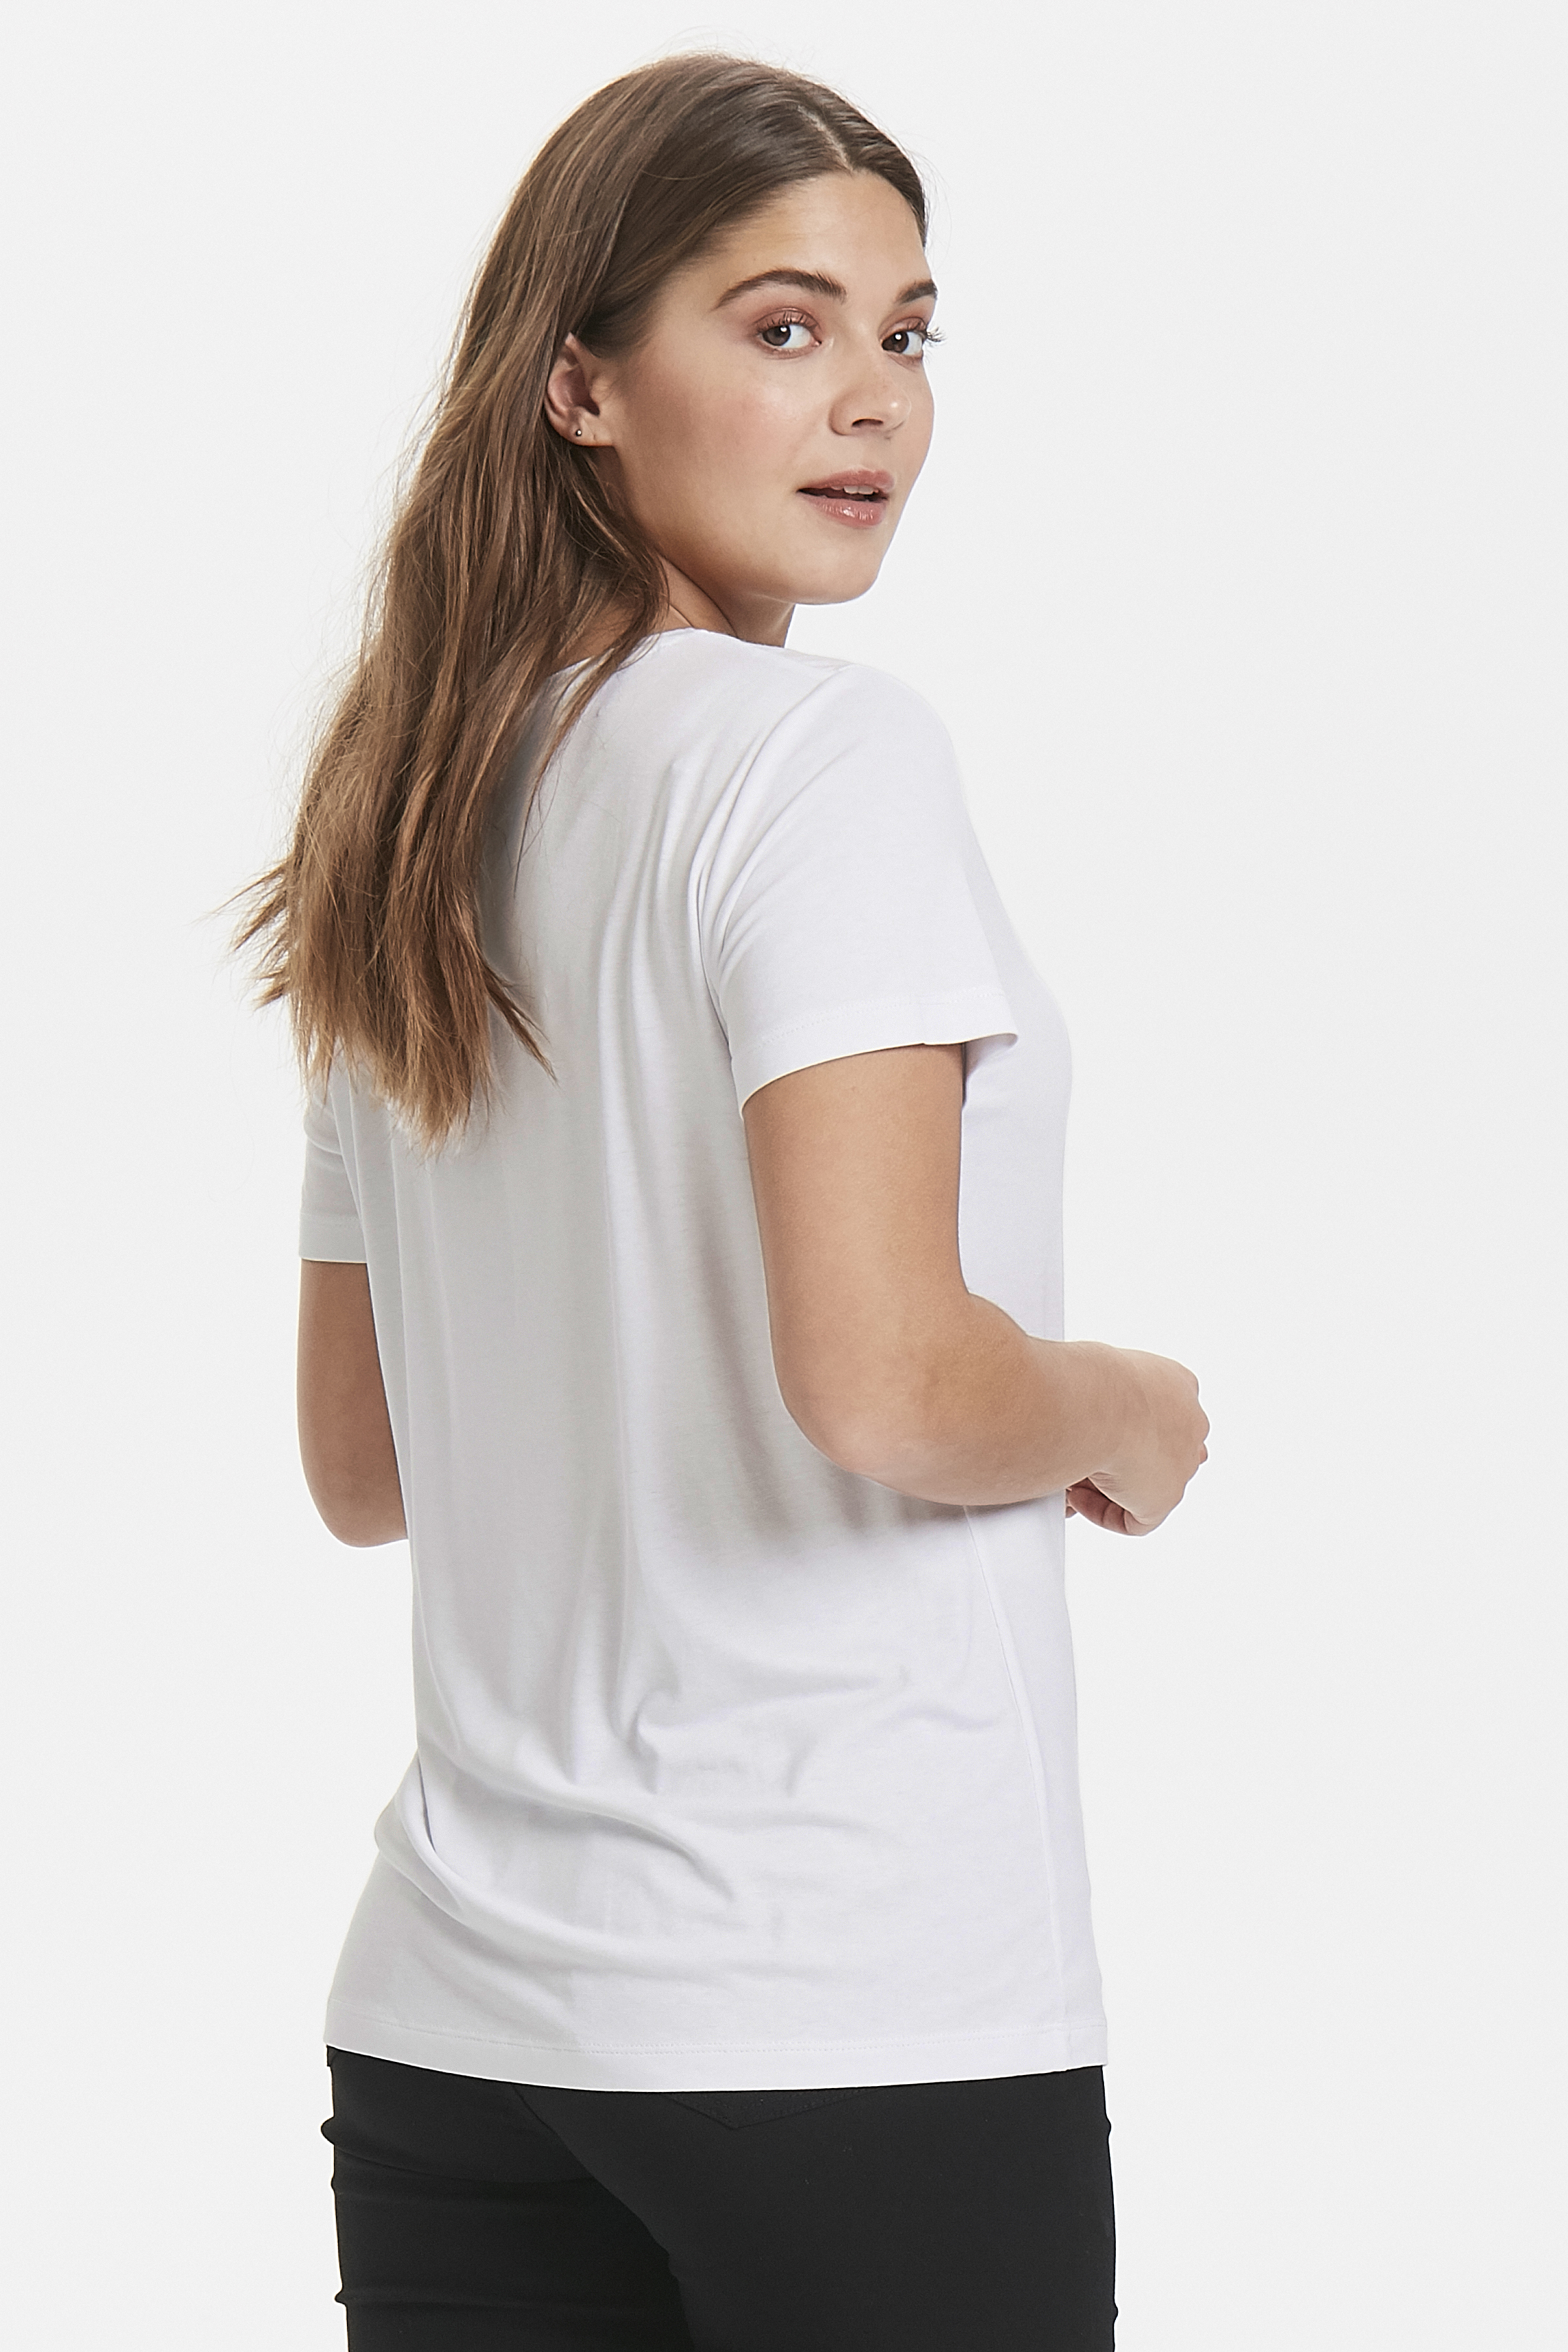 Optical White T-shirt från b.young – Köp Optical White T-shirt från storlek XS-XL här